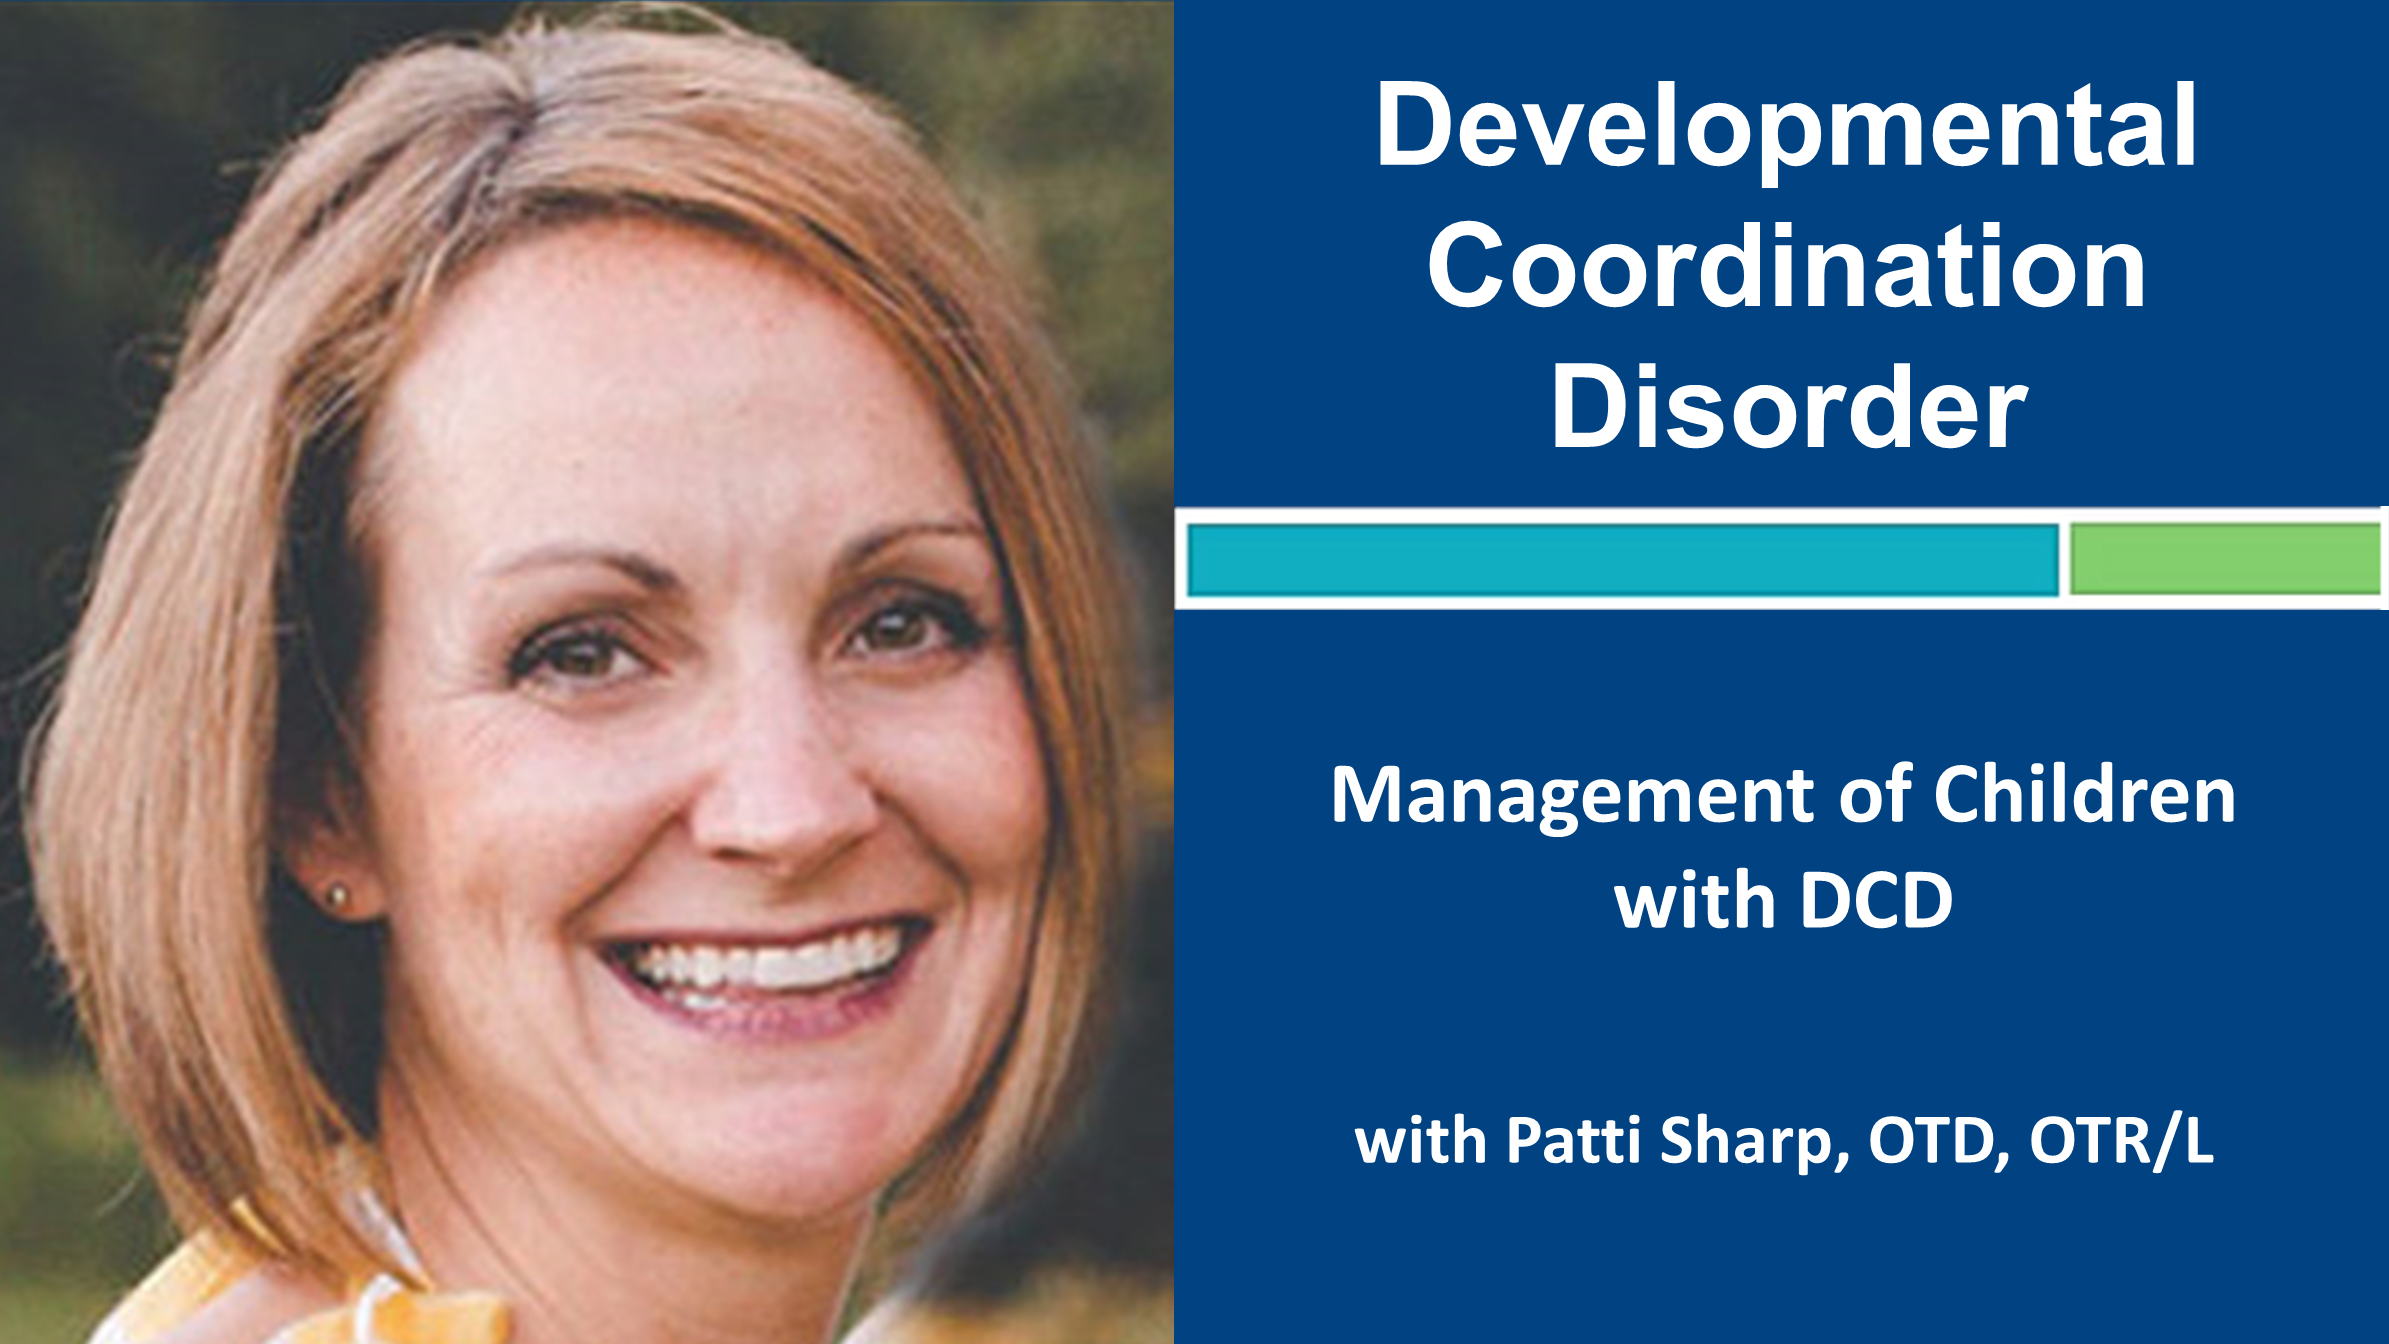 Webinar 3: Down Syndrome with Carly Matichak Stock, PT, DPT